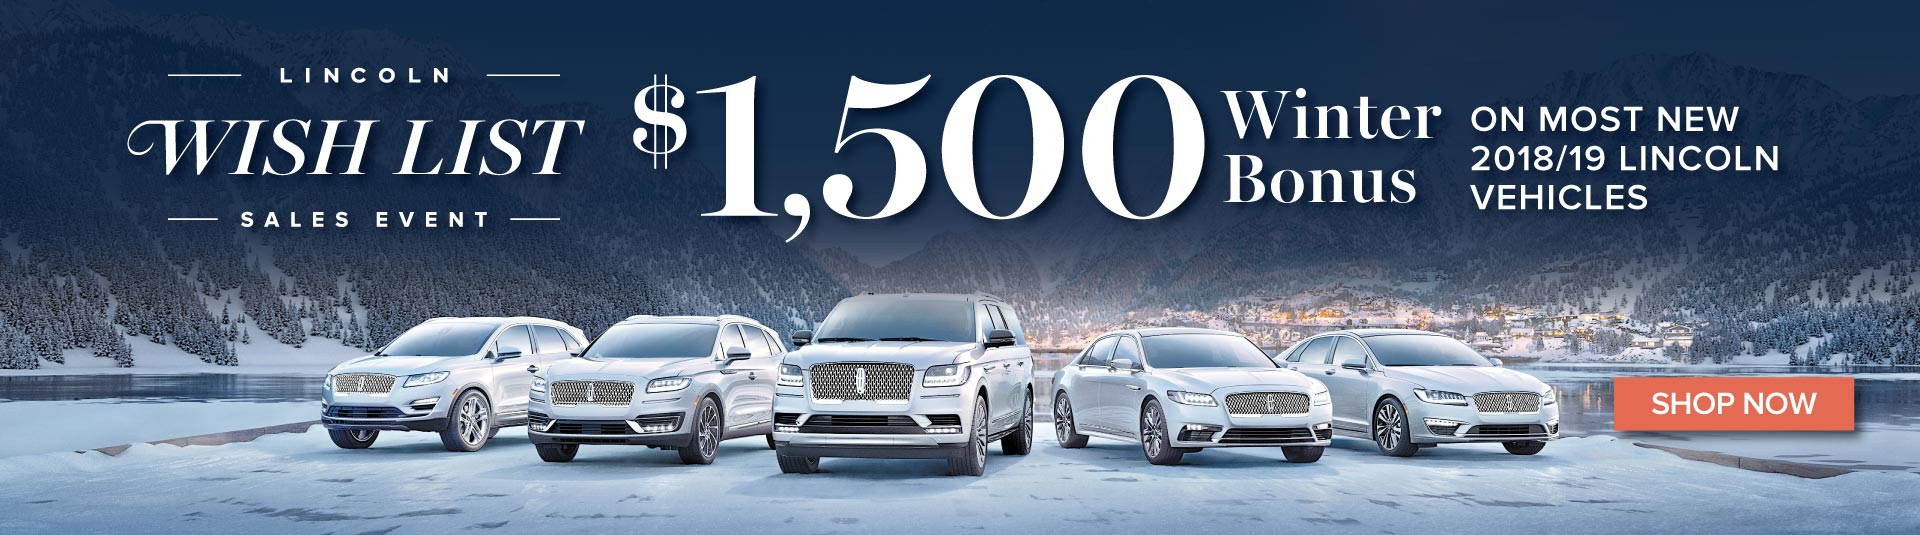 Lincoln Wishlist Sales Event